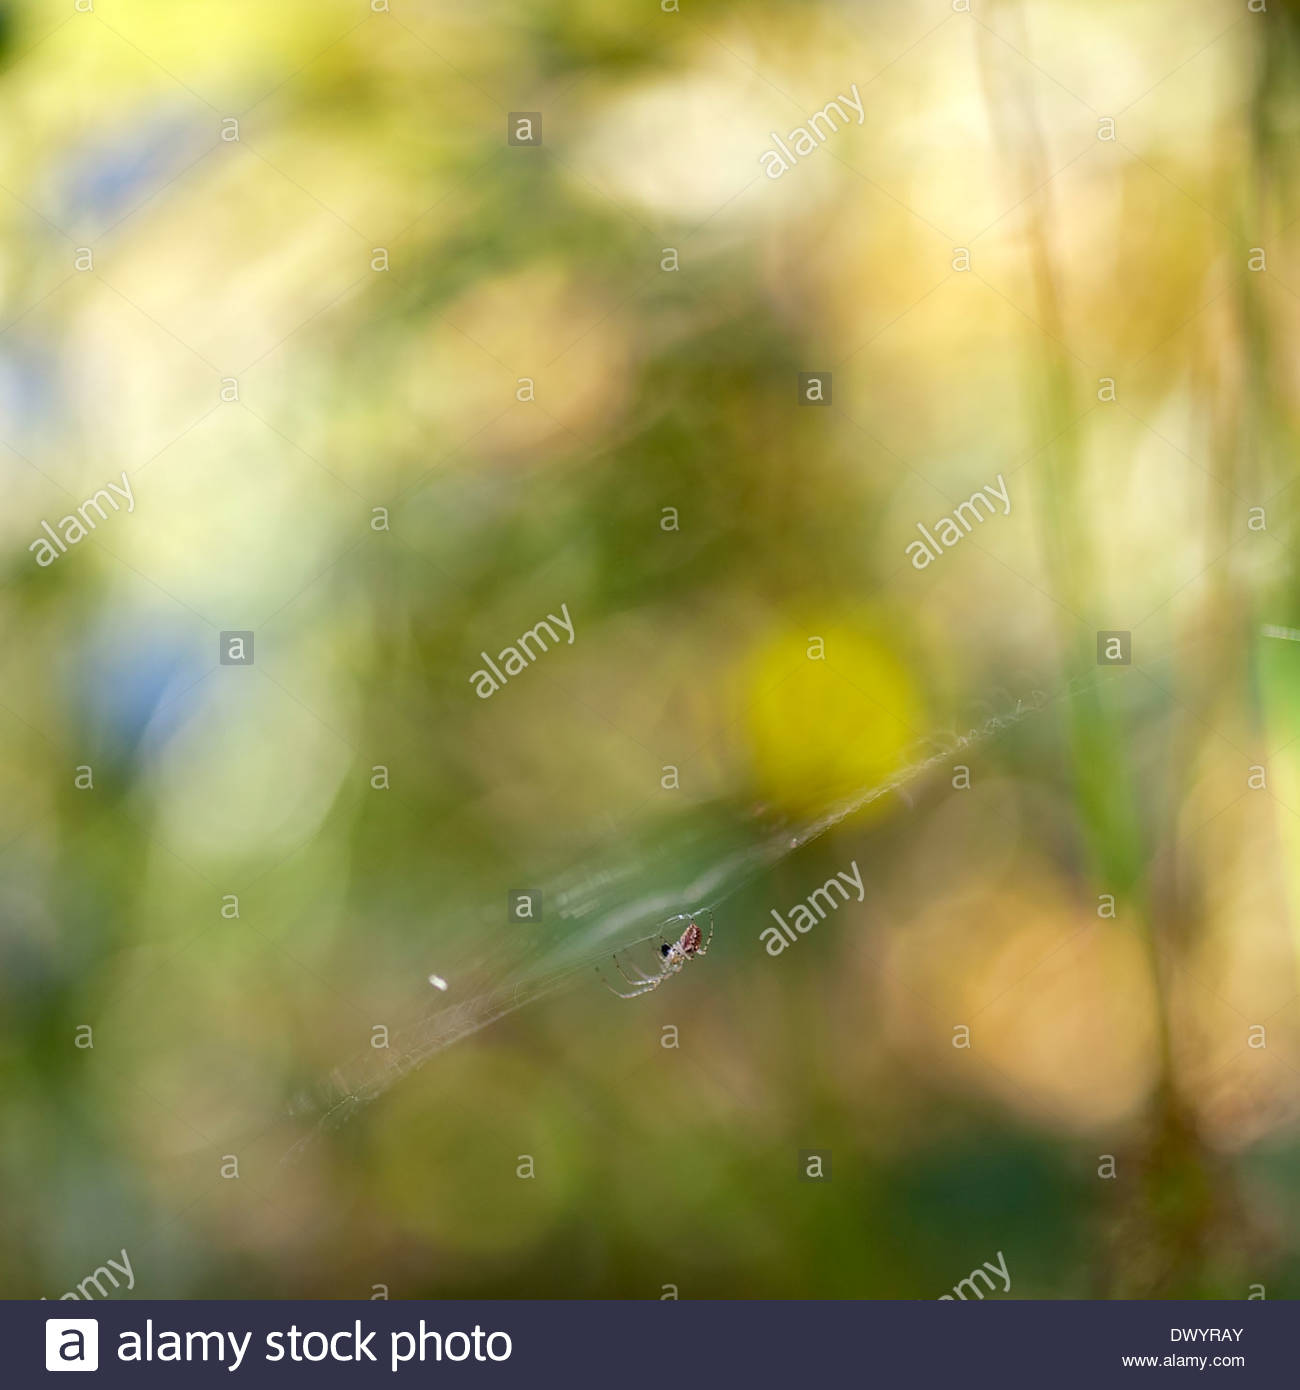 A spider waiting - Stock Image